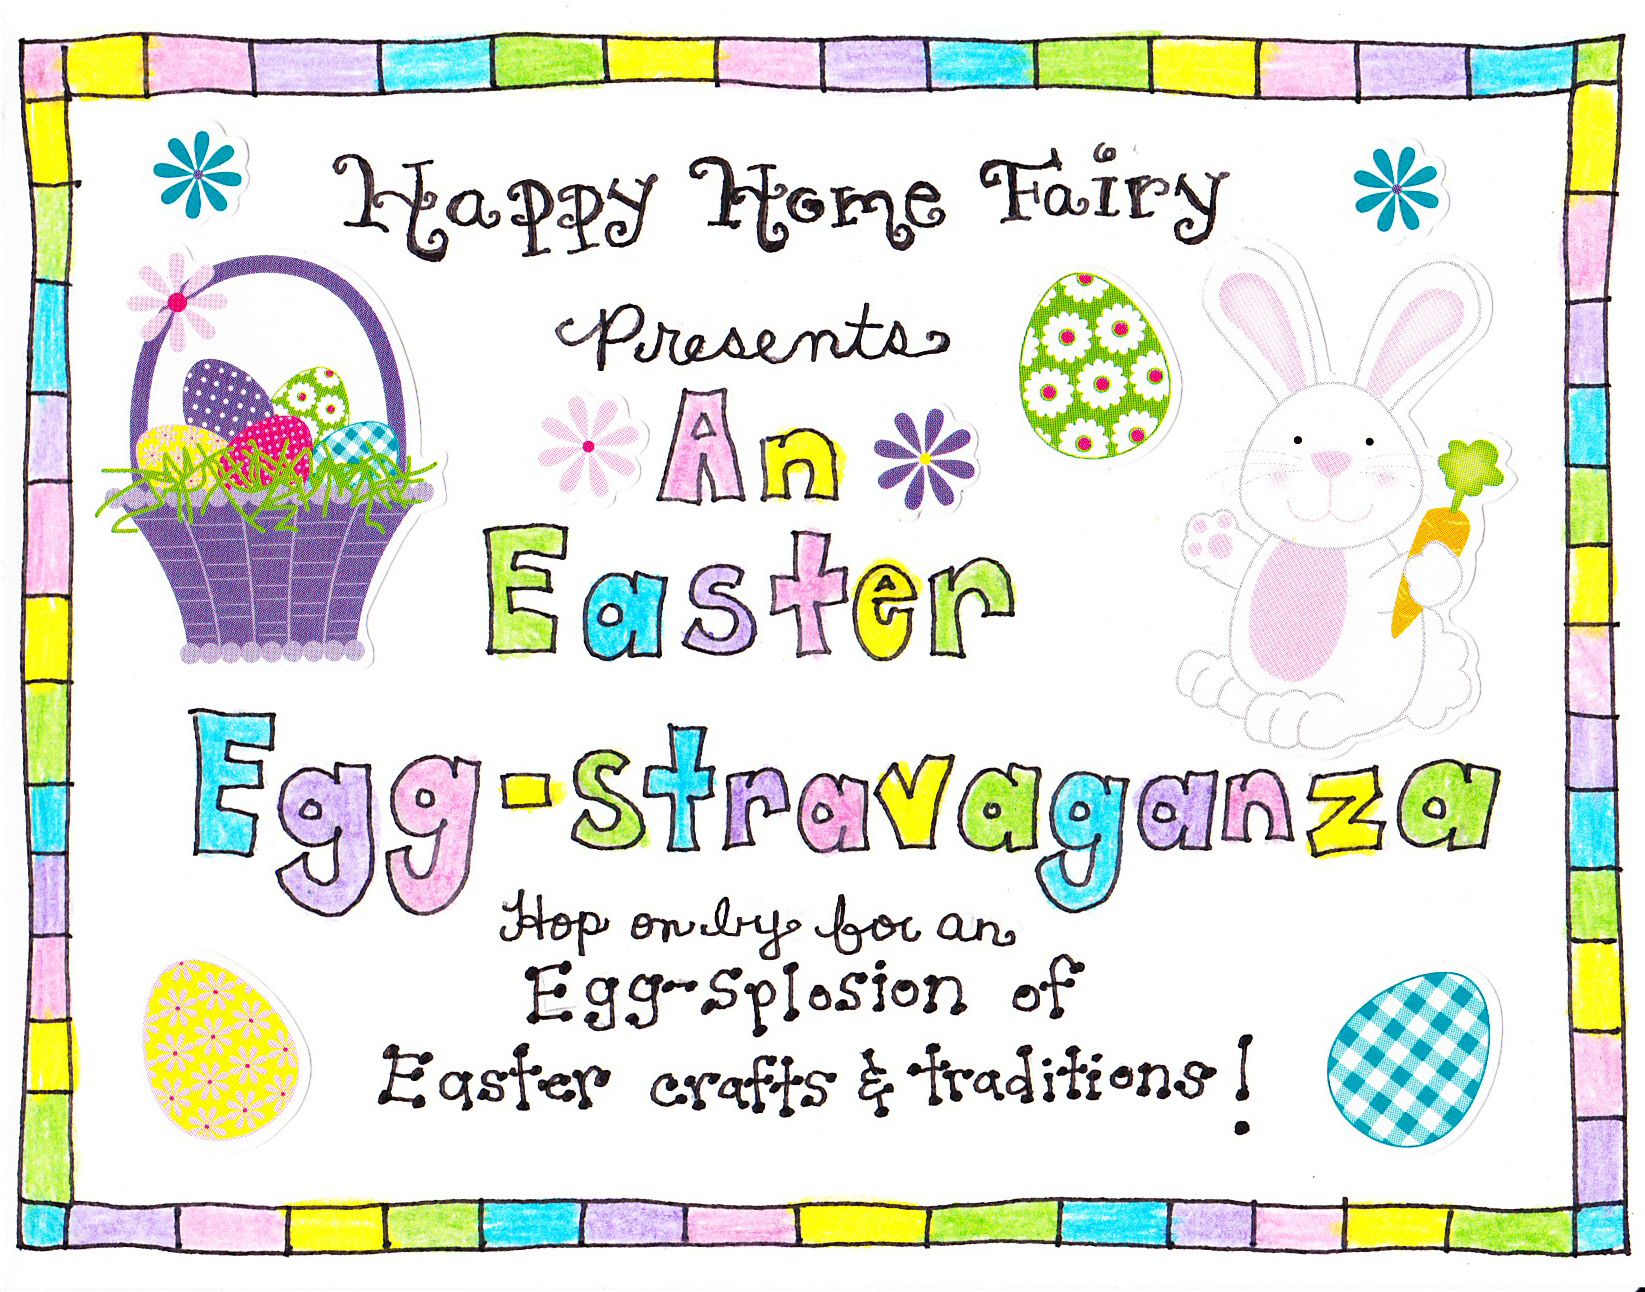 easter morning scavenger hunt - free printable! - happy home fairy